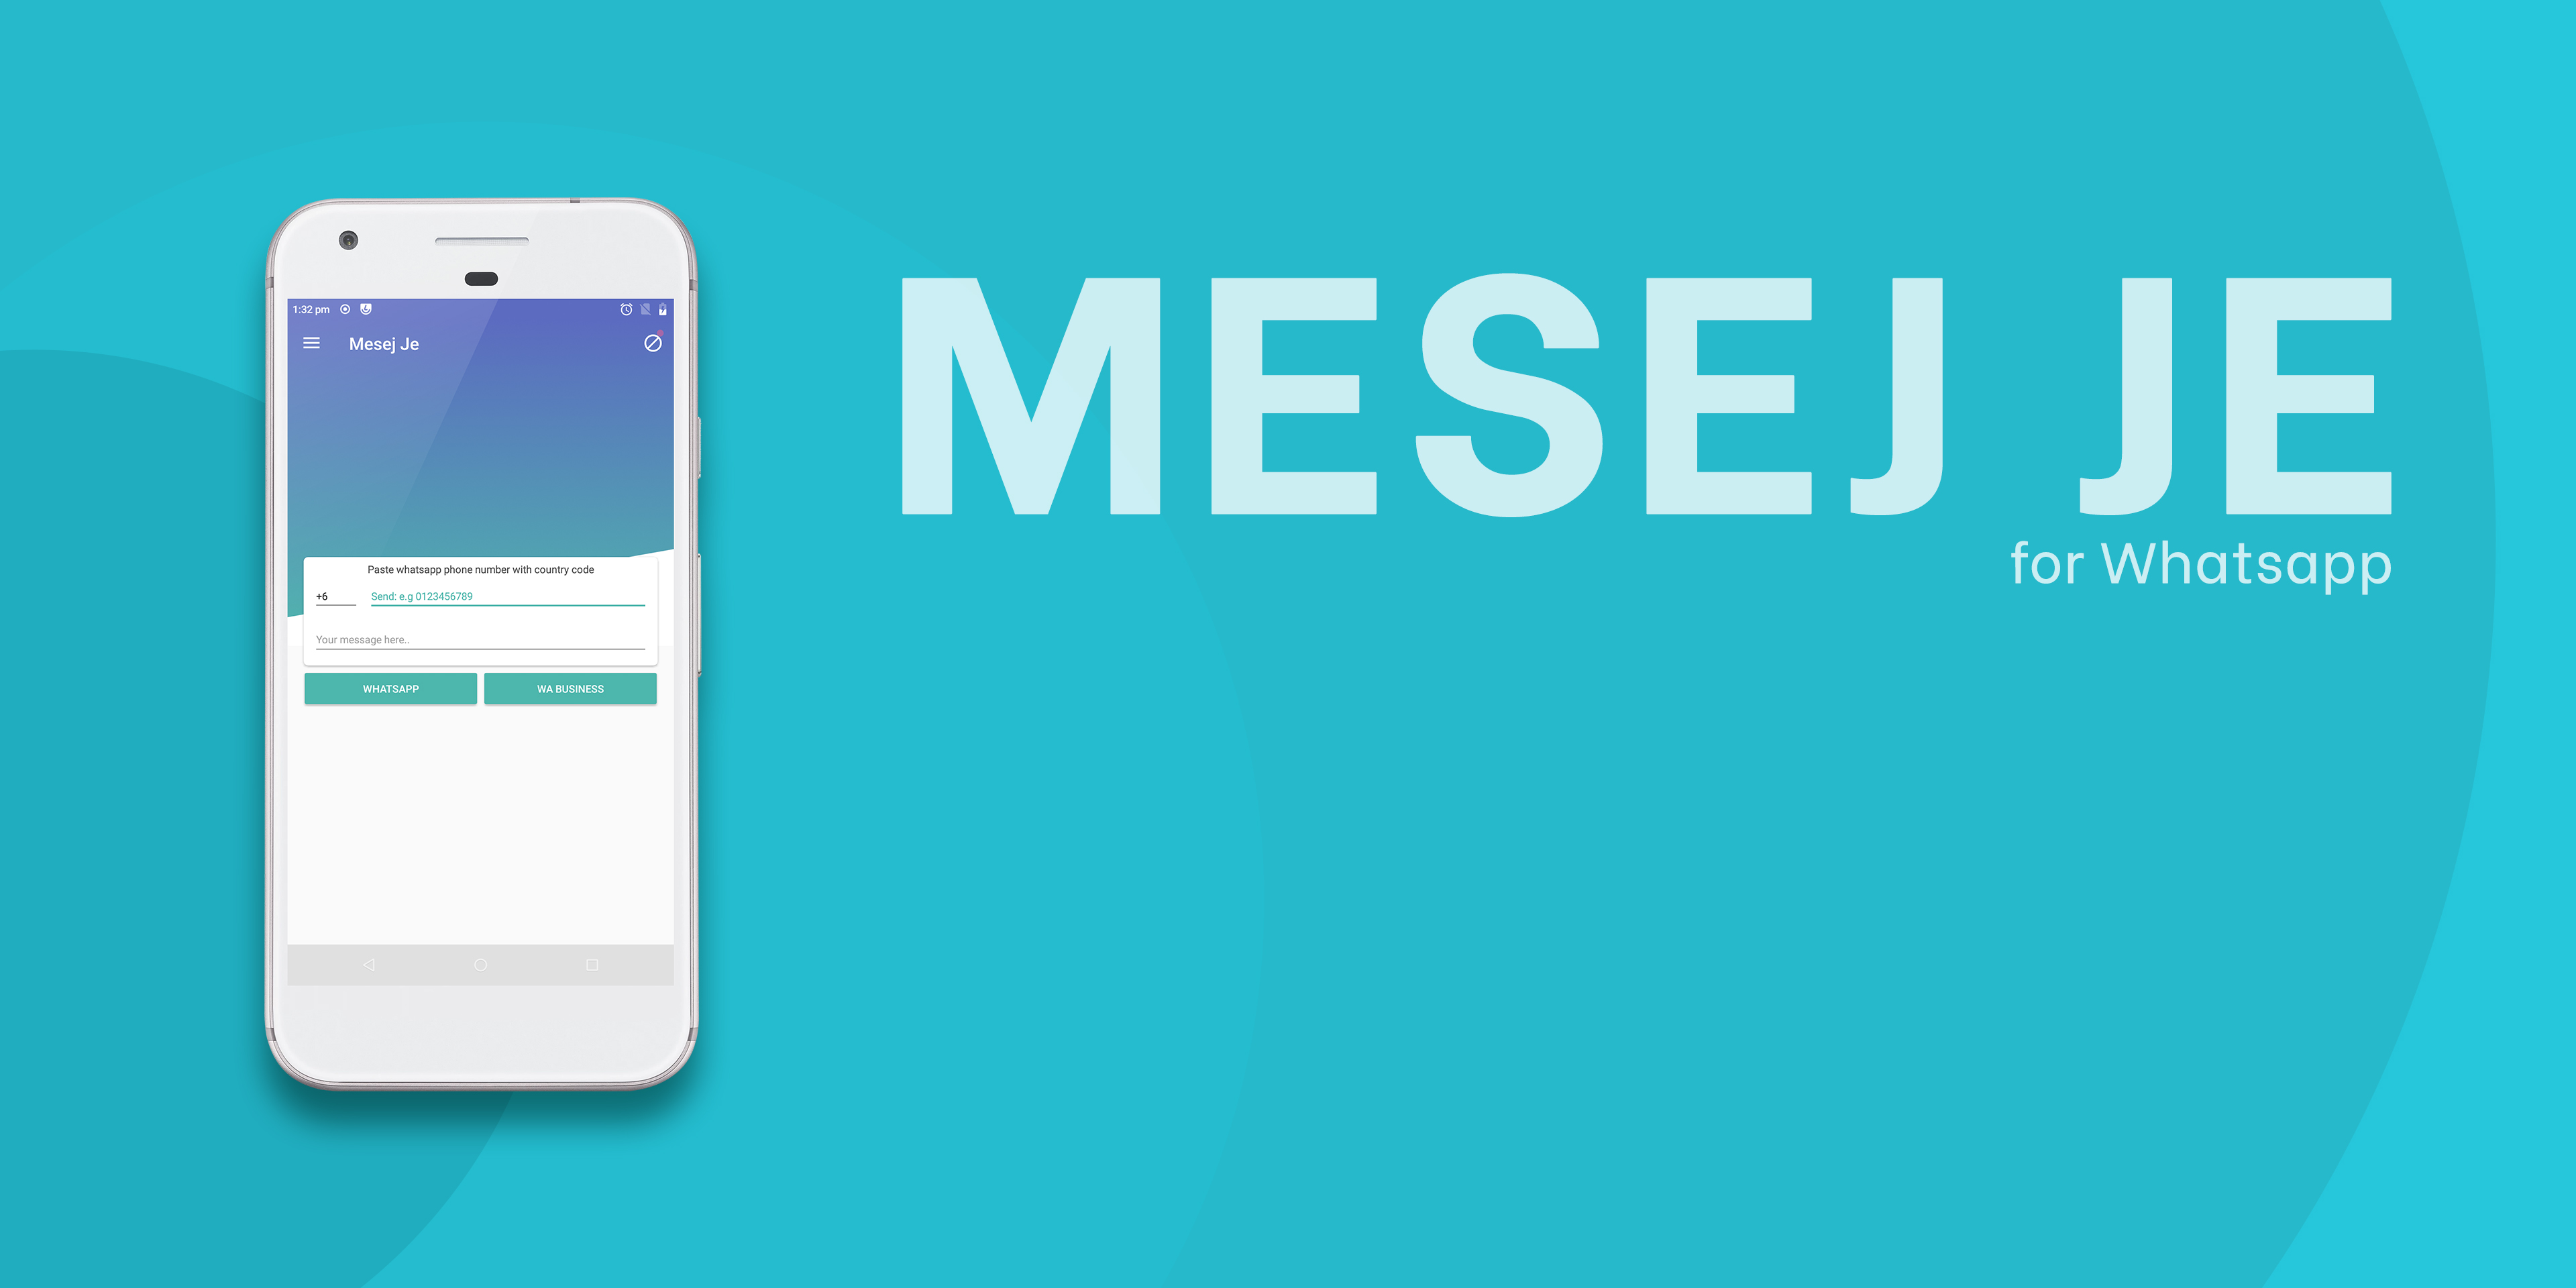 Mesej Je: Instant Chat & Tool for Whatsapp